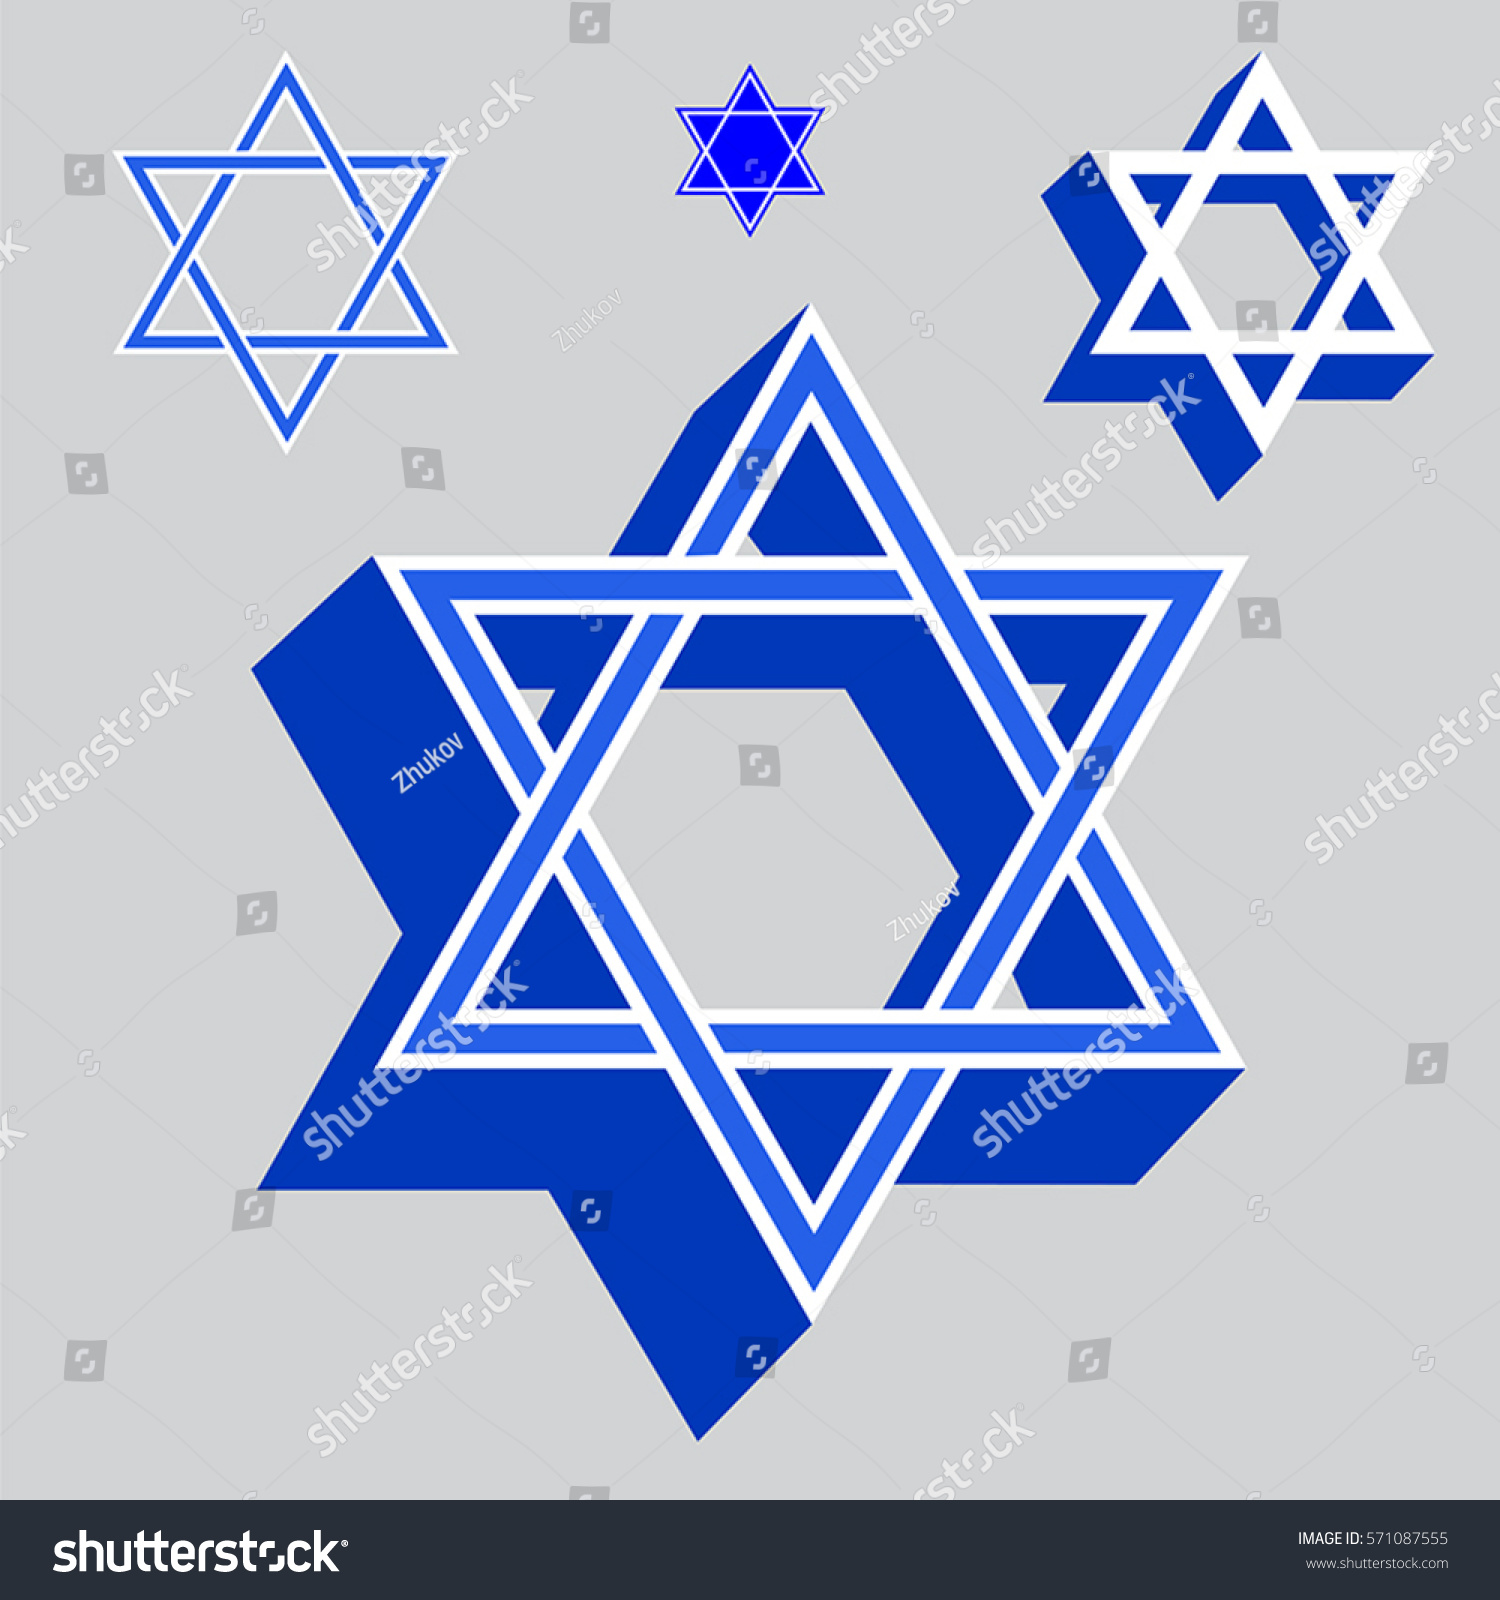 Jewish sacred symbols gallery symbol and sign ideas jewish sacred symbols gallery symbol and sign ideas star david jewish religious symbols vector stock vector biocorpaavc